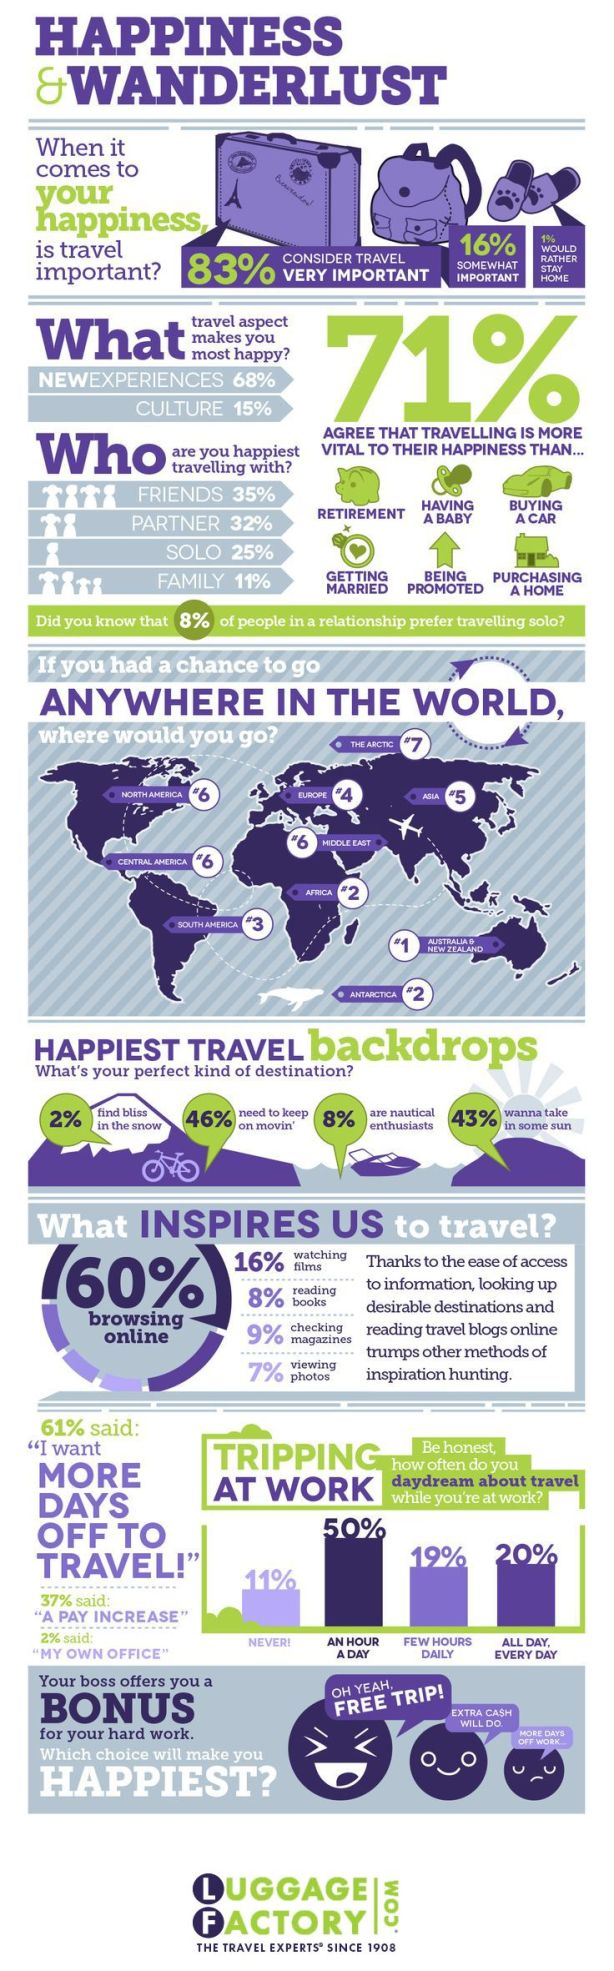 Happiness and Wanderlust